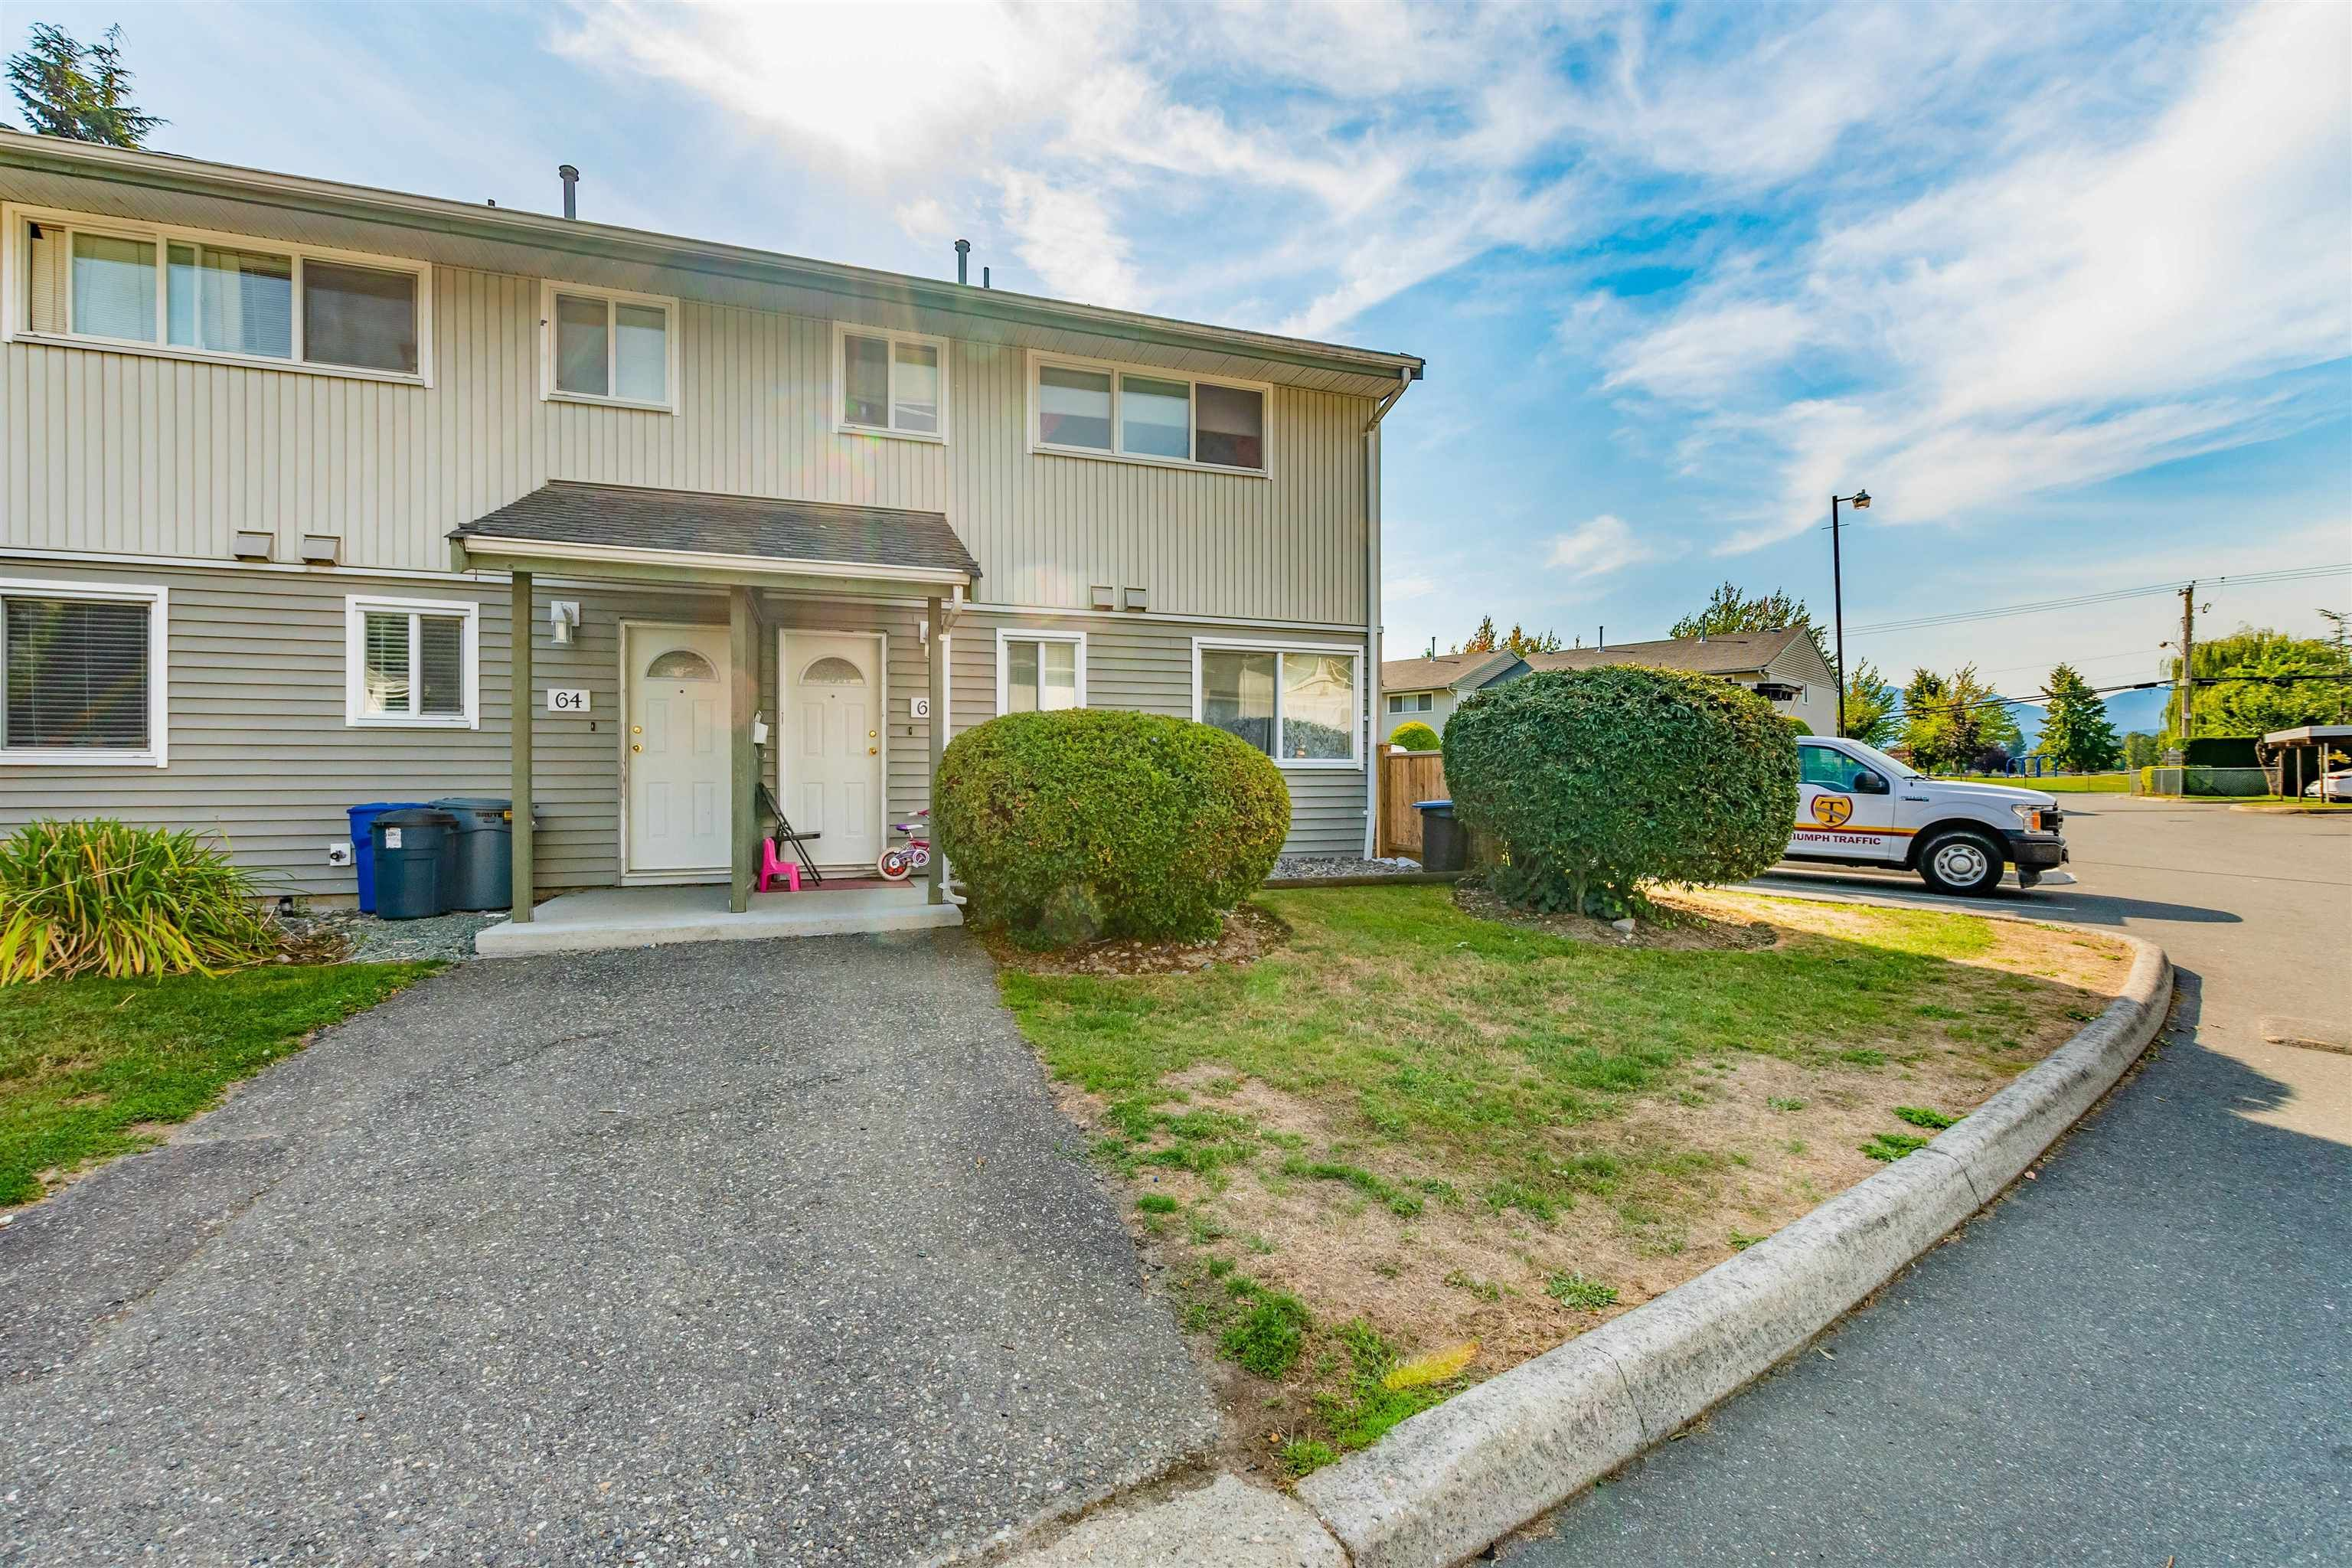 """Main Photo: 63 45185 WOLFE Road in Chilliwack: Chilliwack W Young-Well Townhouse for sale in """"Townsend Greens"""" : MLS®# R2614842"""